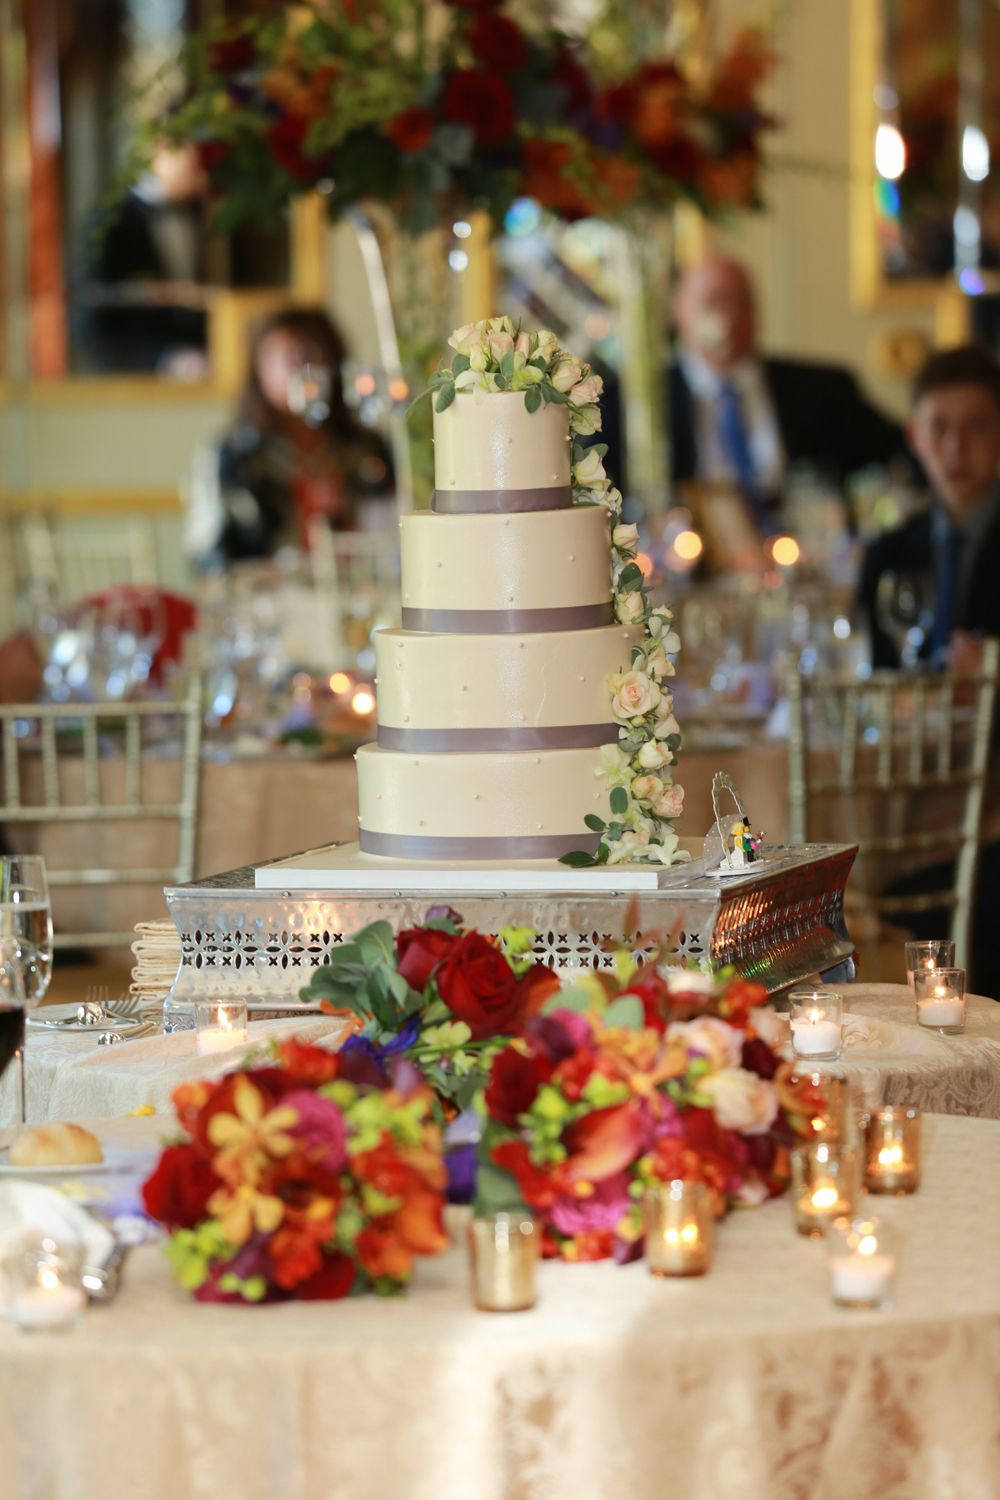 Wedding Cake Photograph by Aperture Photography